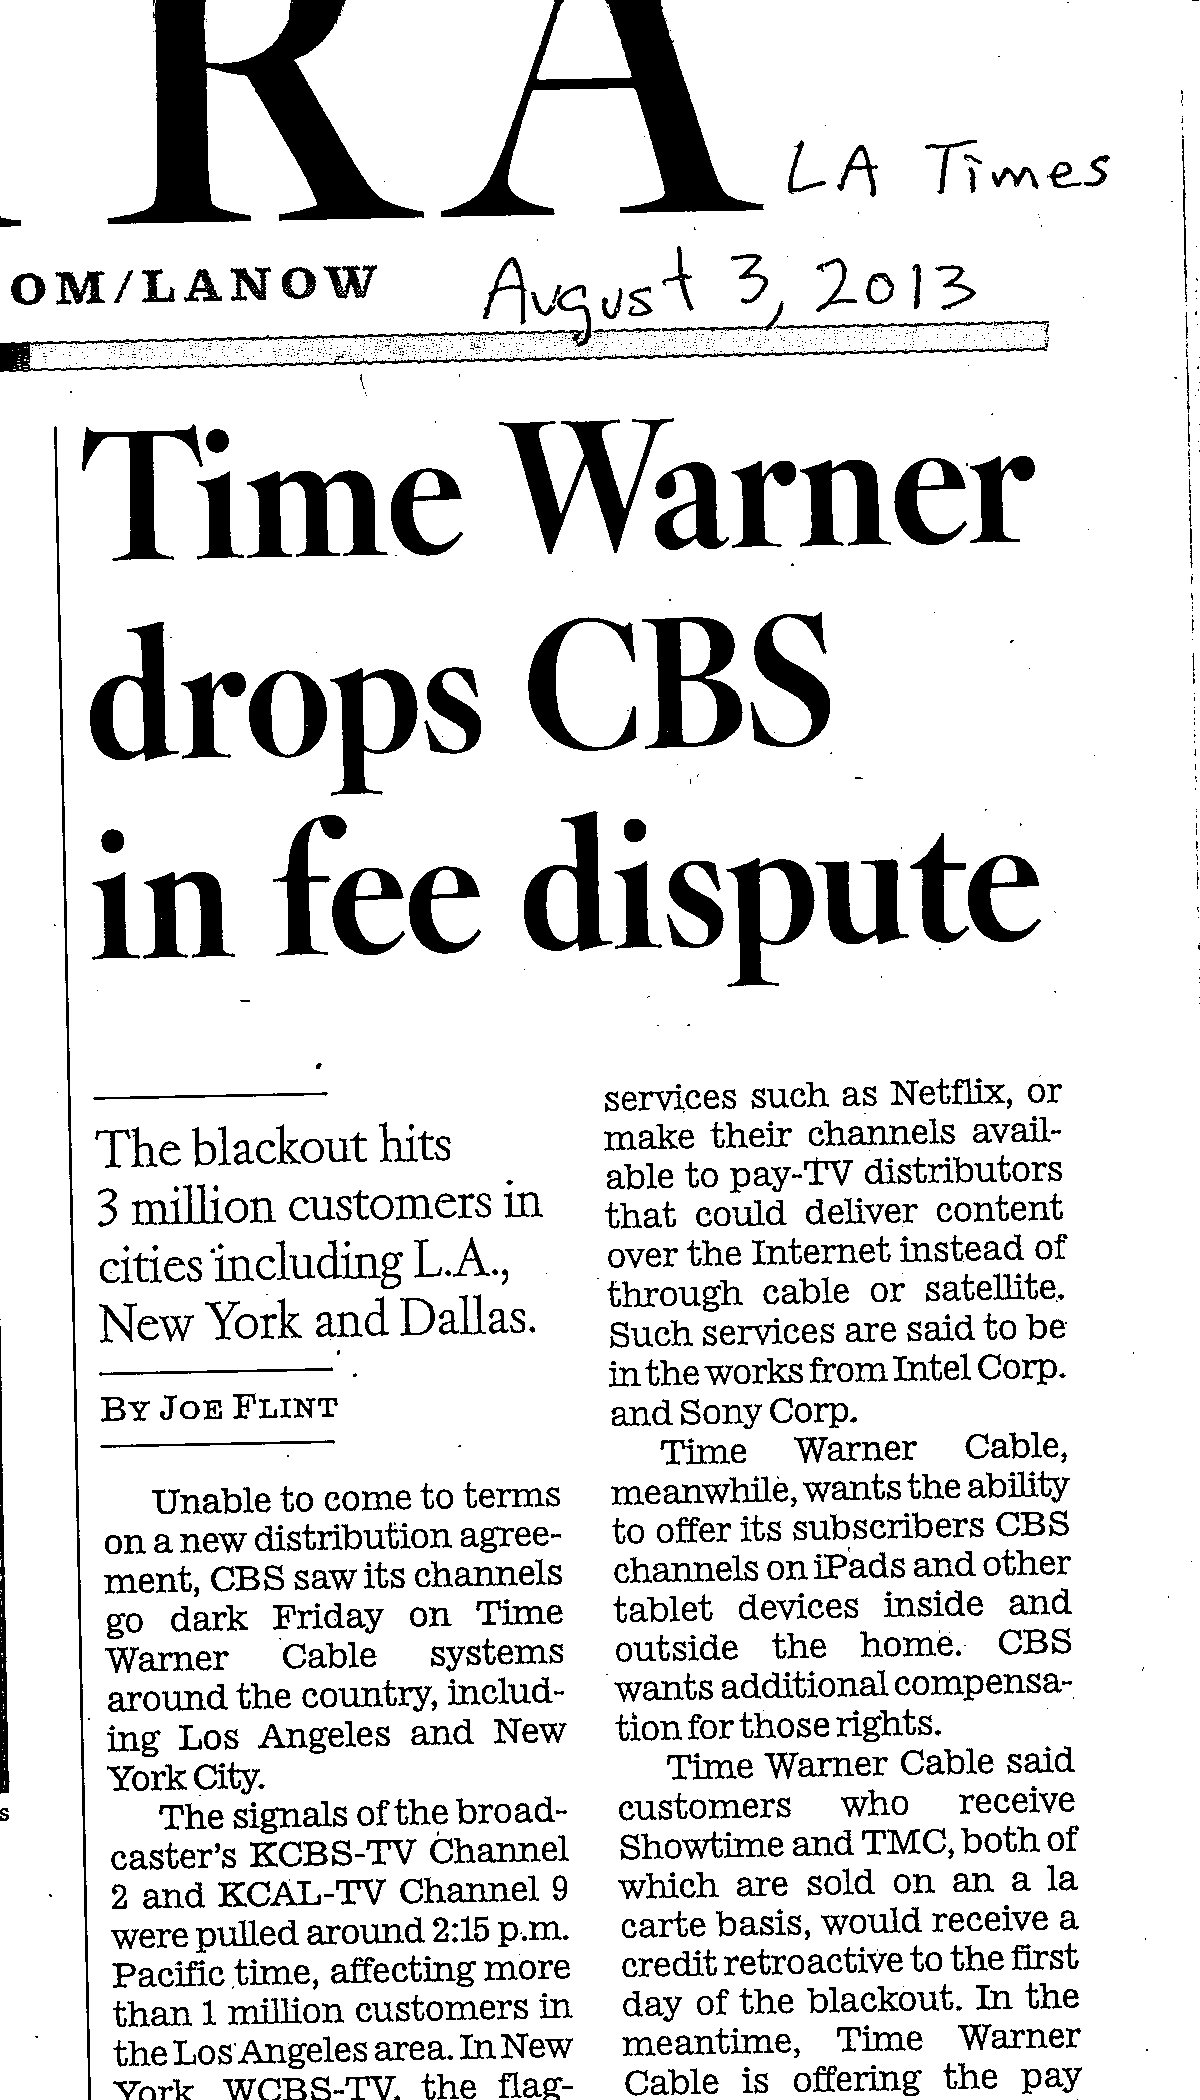 LA Times clip on Time Warner vs. CBS - 2013-08-03